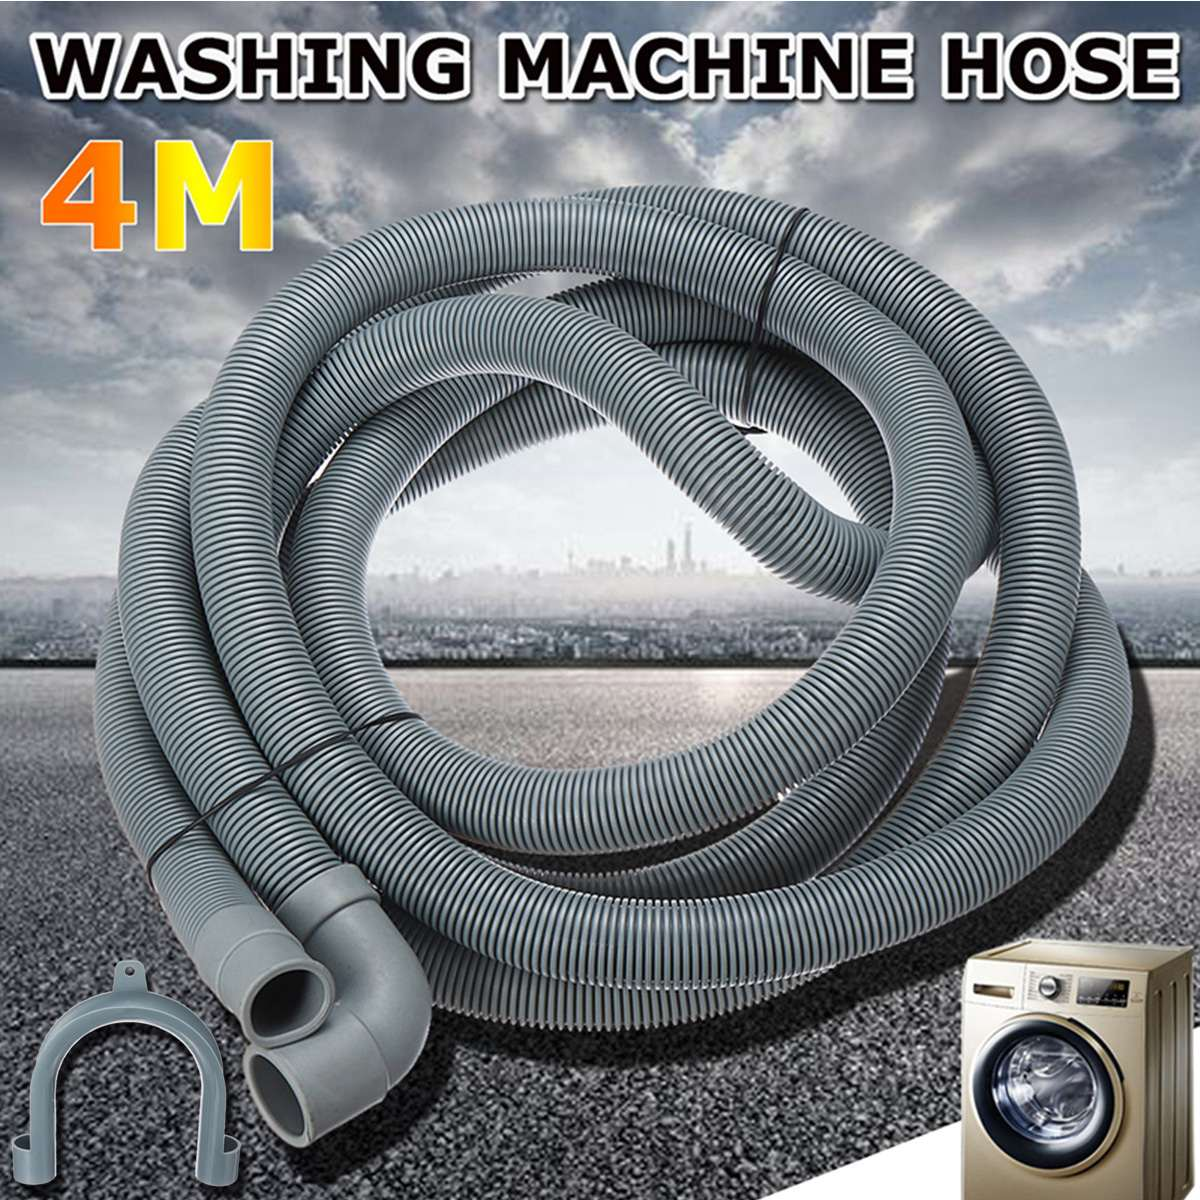 New 4M Wash Machine Dishwasher Drain Hose Outlet Water Pipe Flexible Extension 22mm With BracketNew 4M Wash Machine Dishwasher Drain Hose Outlet Water Pipe Flexible Extension 22mm With Bracket